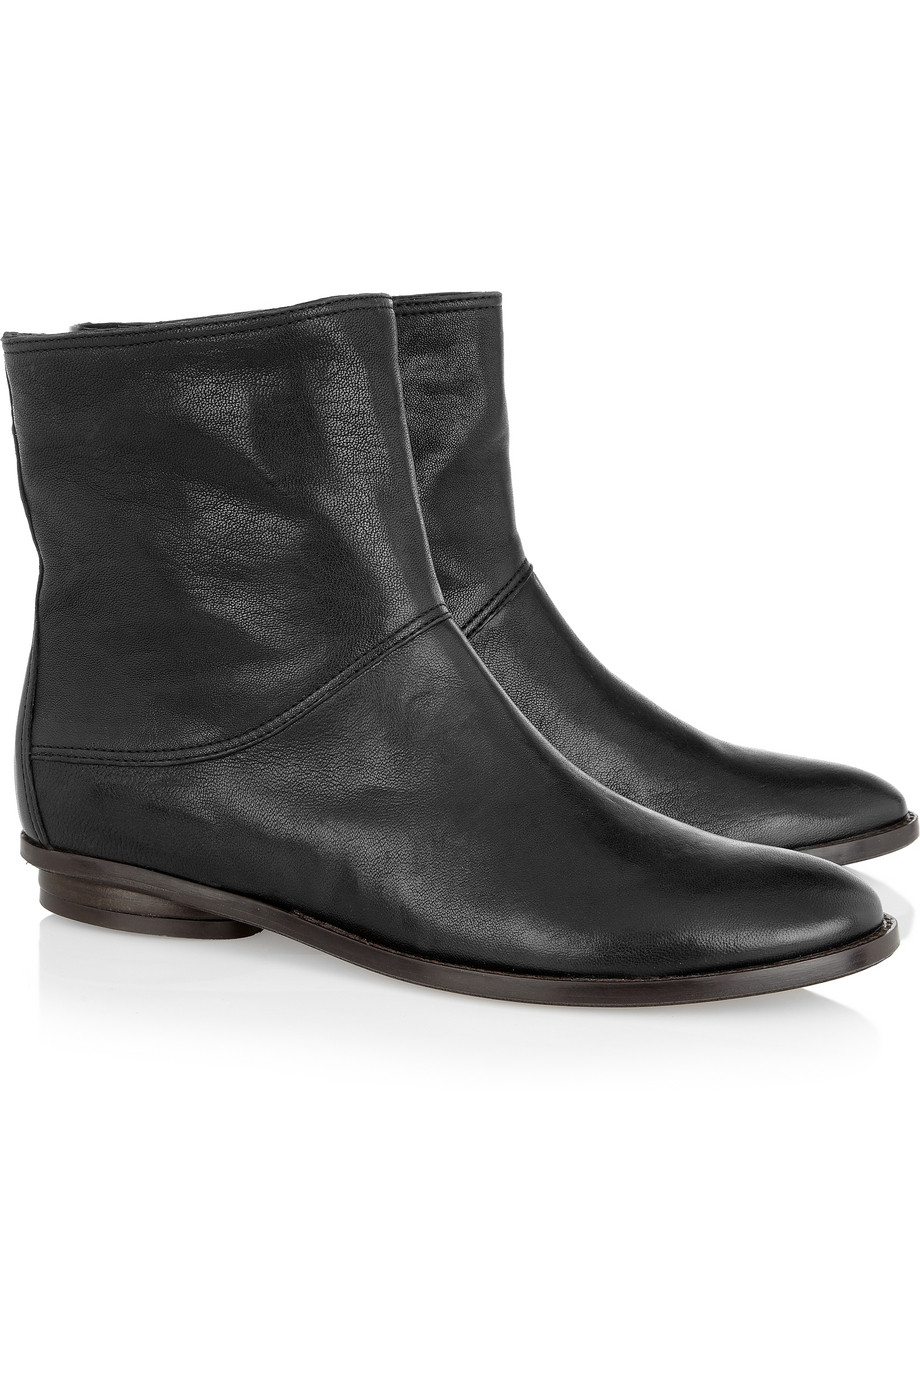 zero cornejo fela leather ankle boots in black lyst